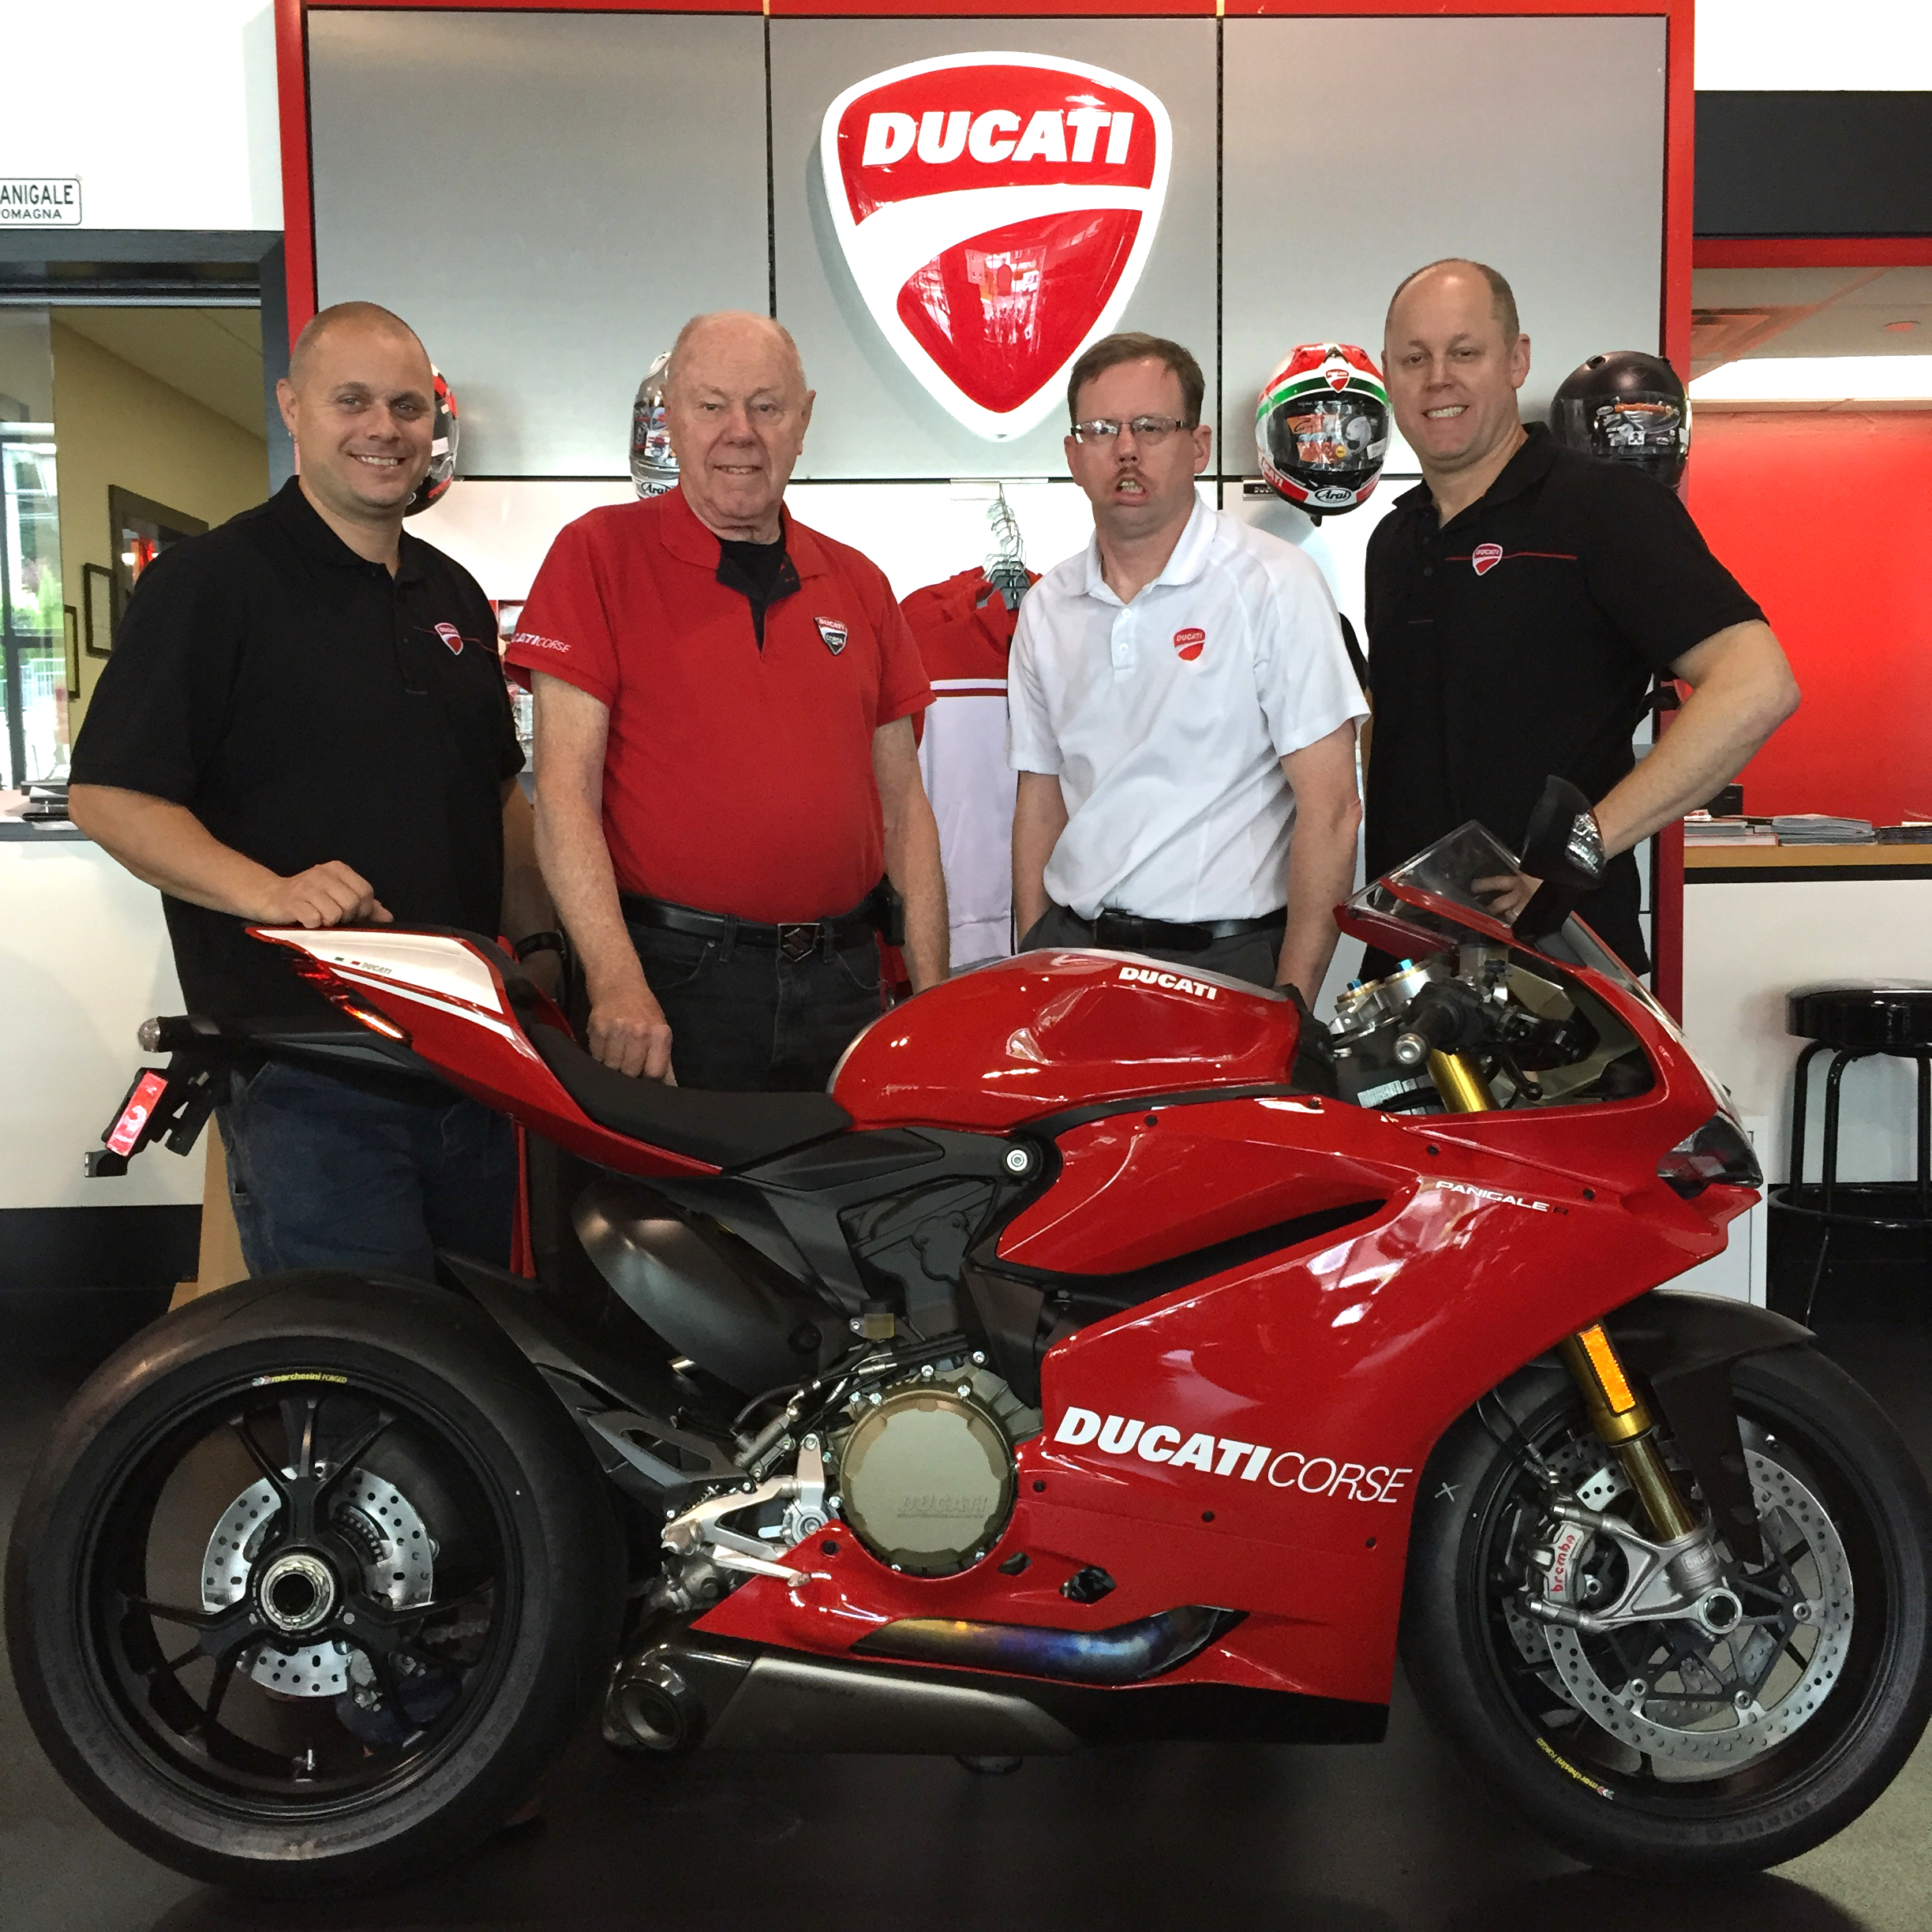 New Metro North President To Recertify As Locomotive: Hudson Valley Motorcycles Seizes May 2015 Ducati Sales